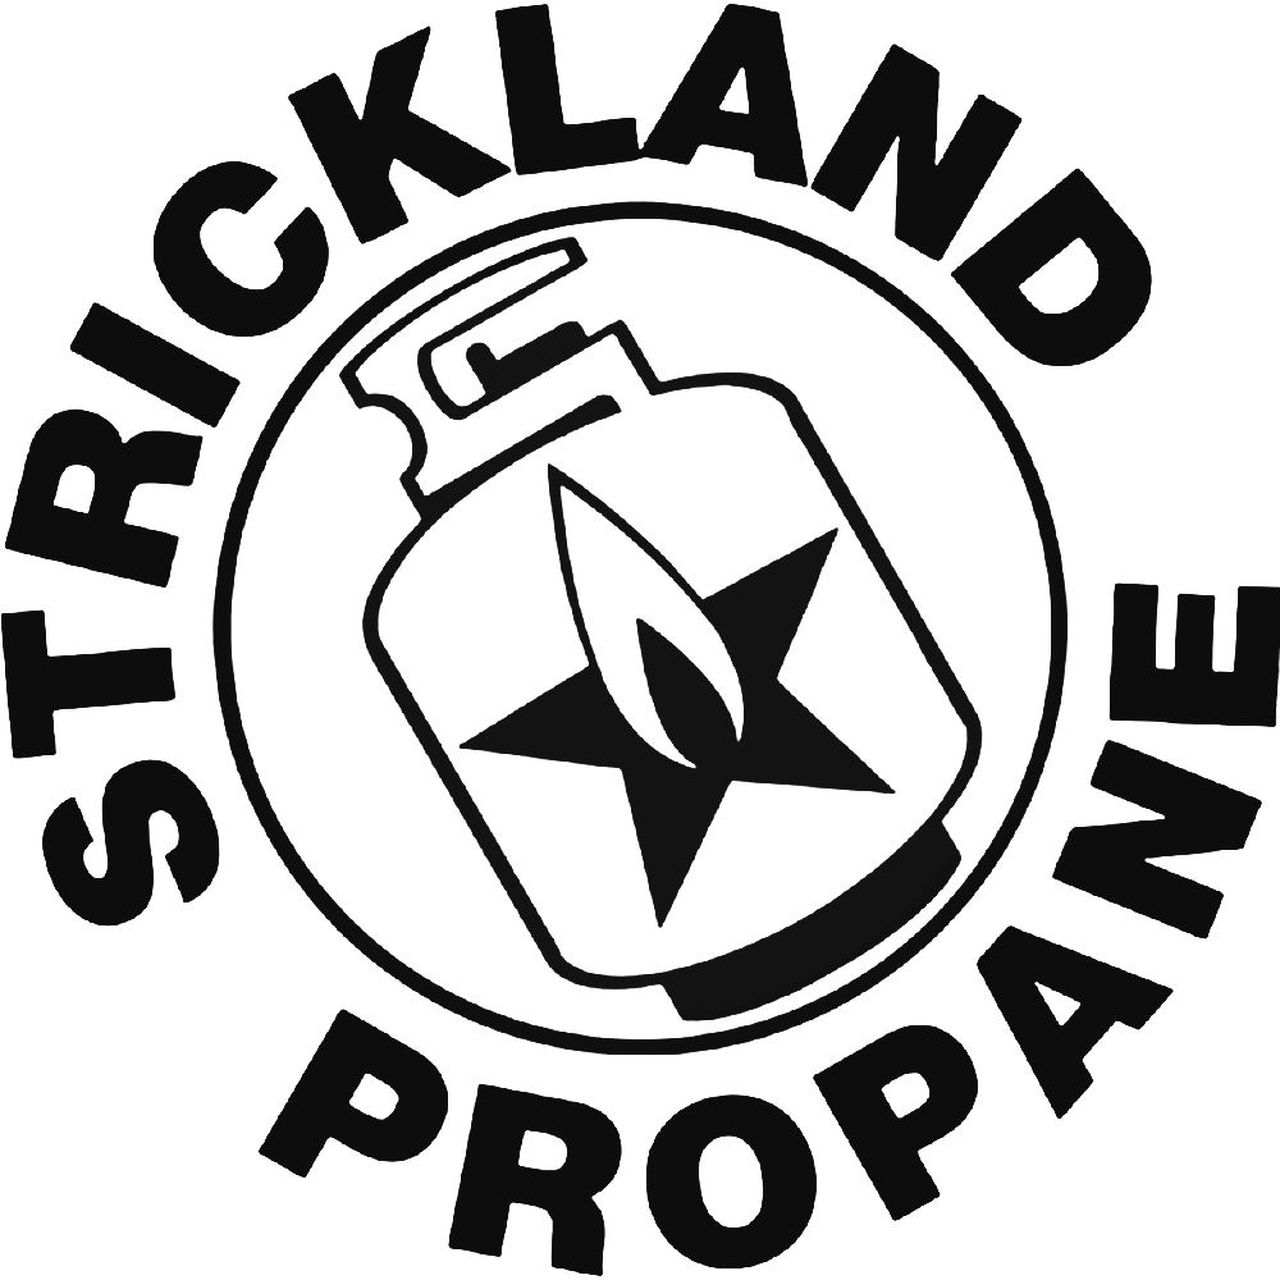 King Of The Hill Strickland Propane 987 Decal Sticker.